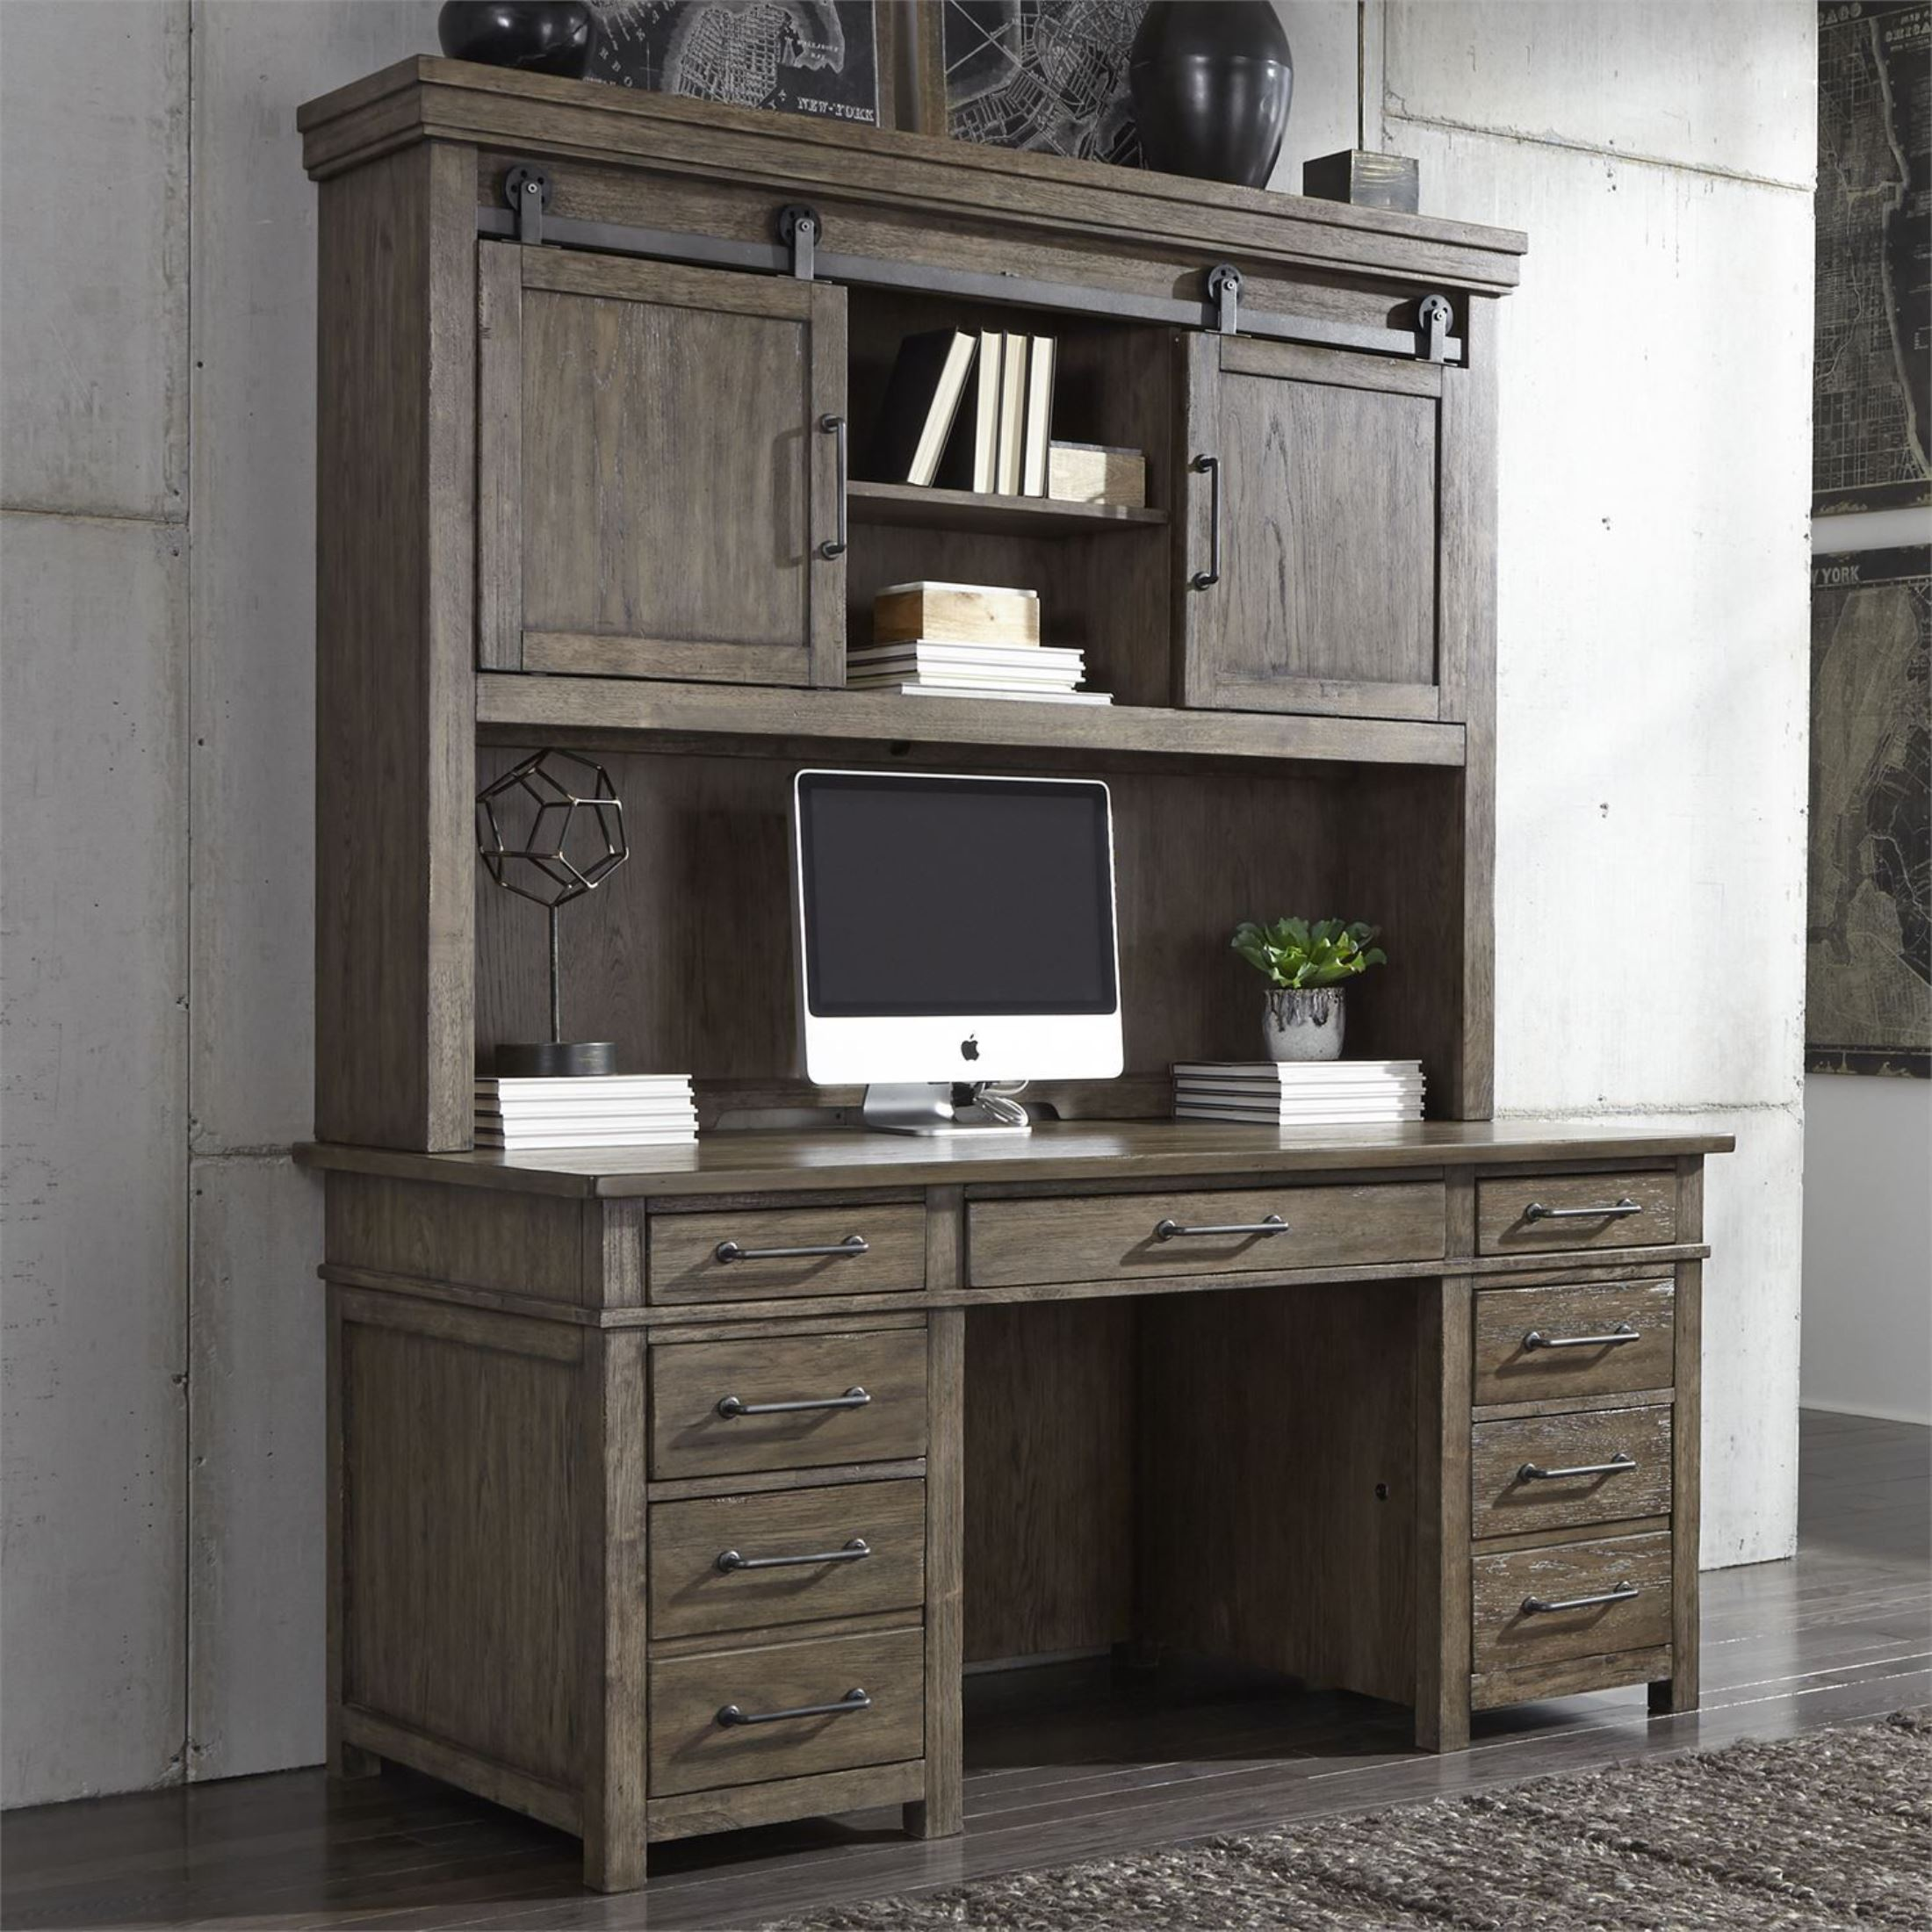 Liberty Sonoma Road Weather Beaten Bark Credenza With